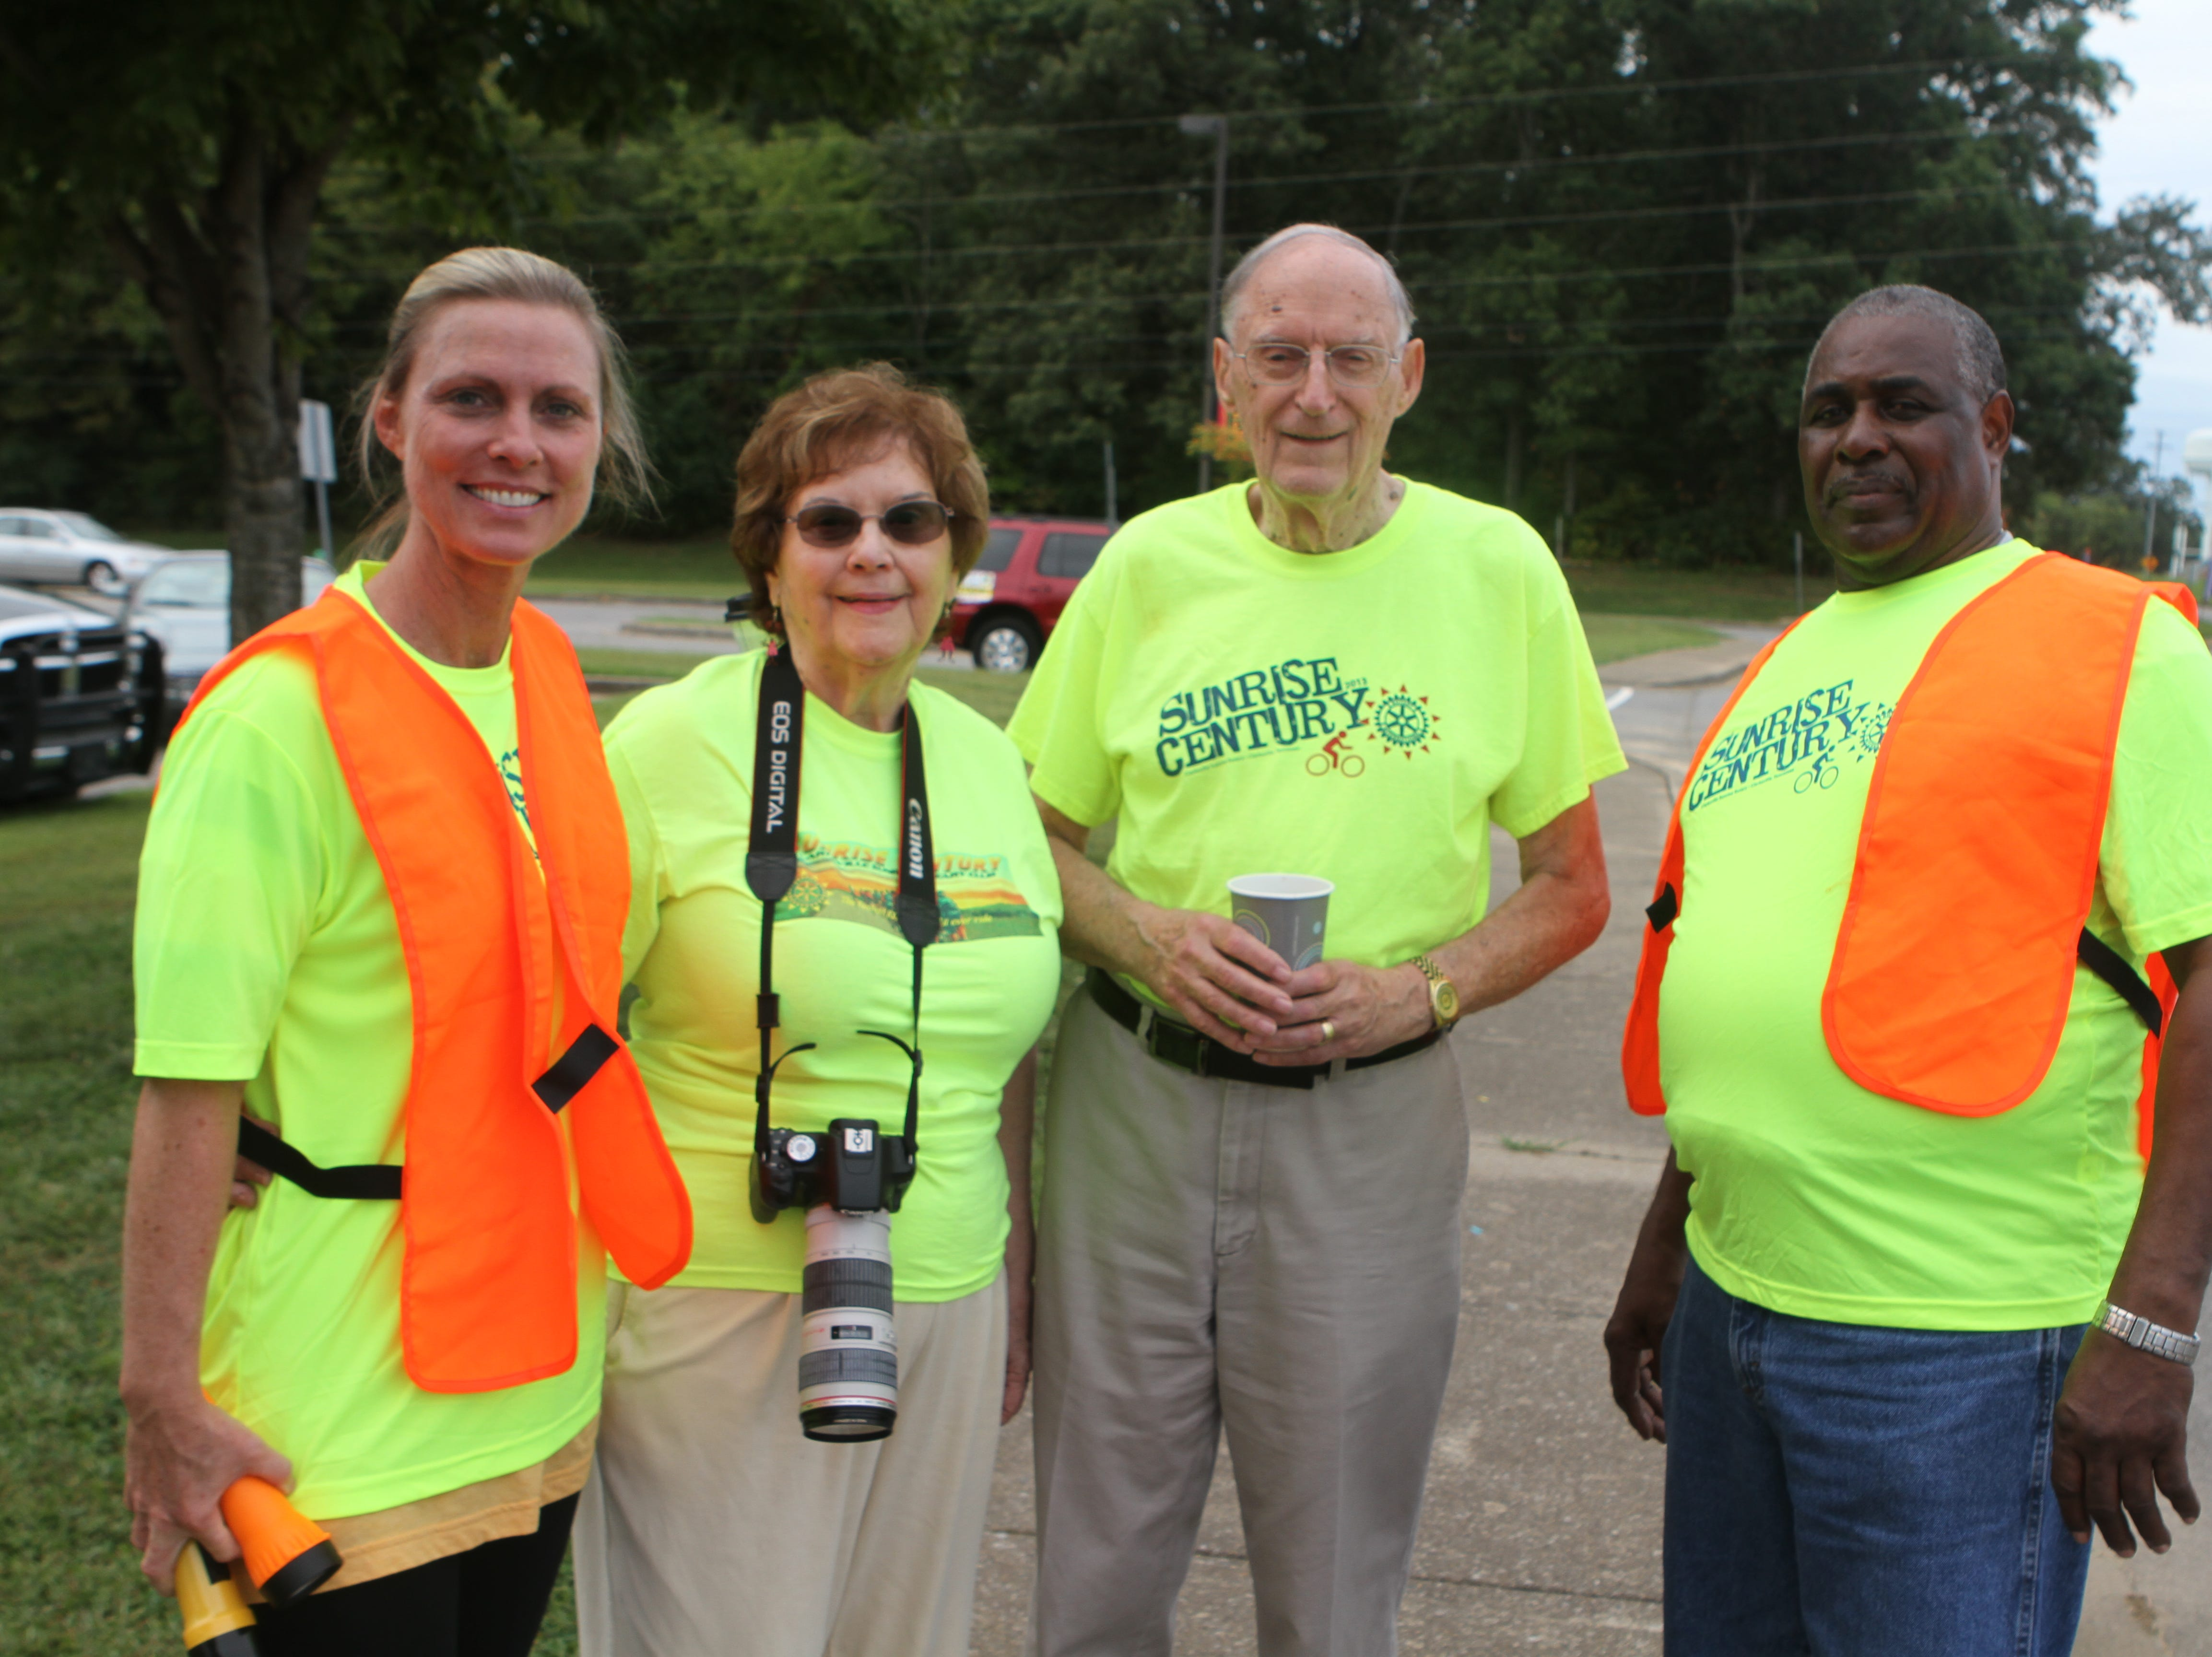 Carrie Daniels, Luannette and John Butler, and John Kendrick at the Sunrise Century Bike Ride Saturday.